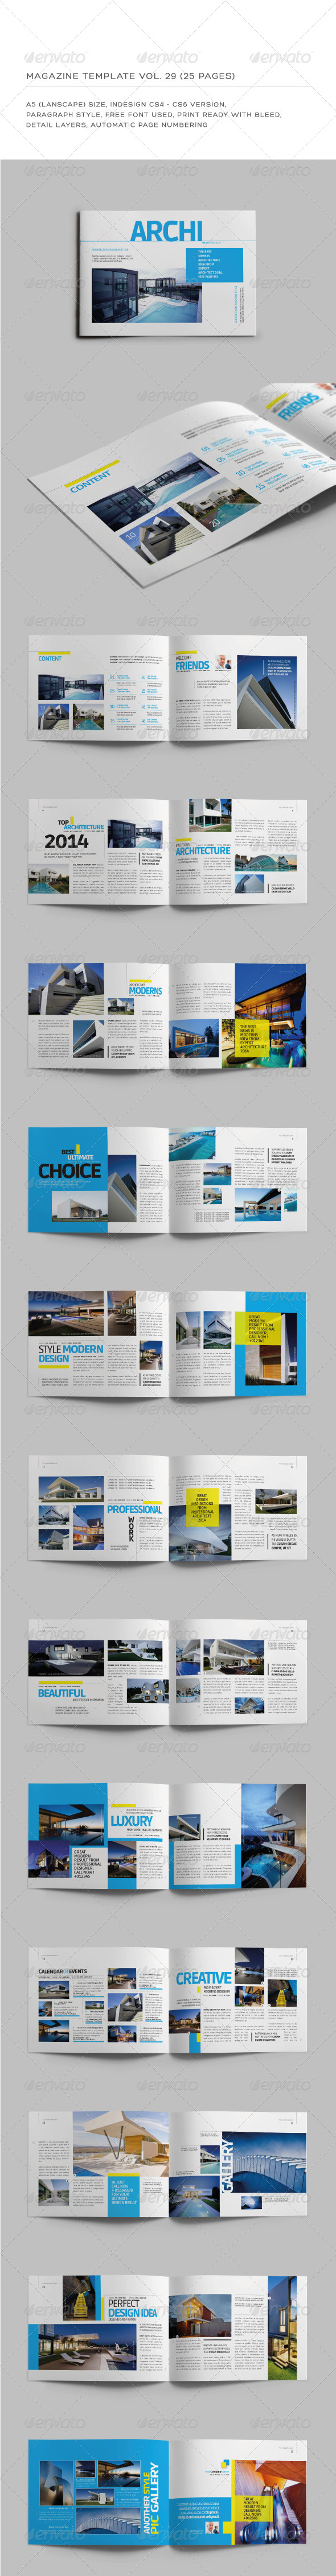 GraphicRiver A5 Landscape 25 Pages mgz Vol 29 7518652